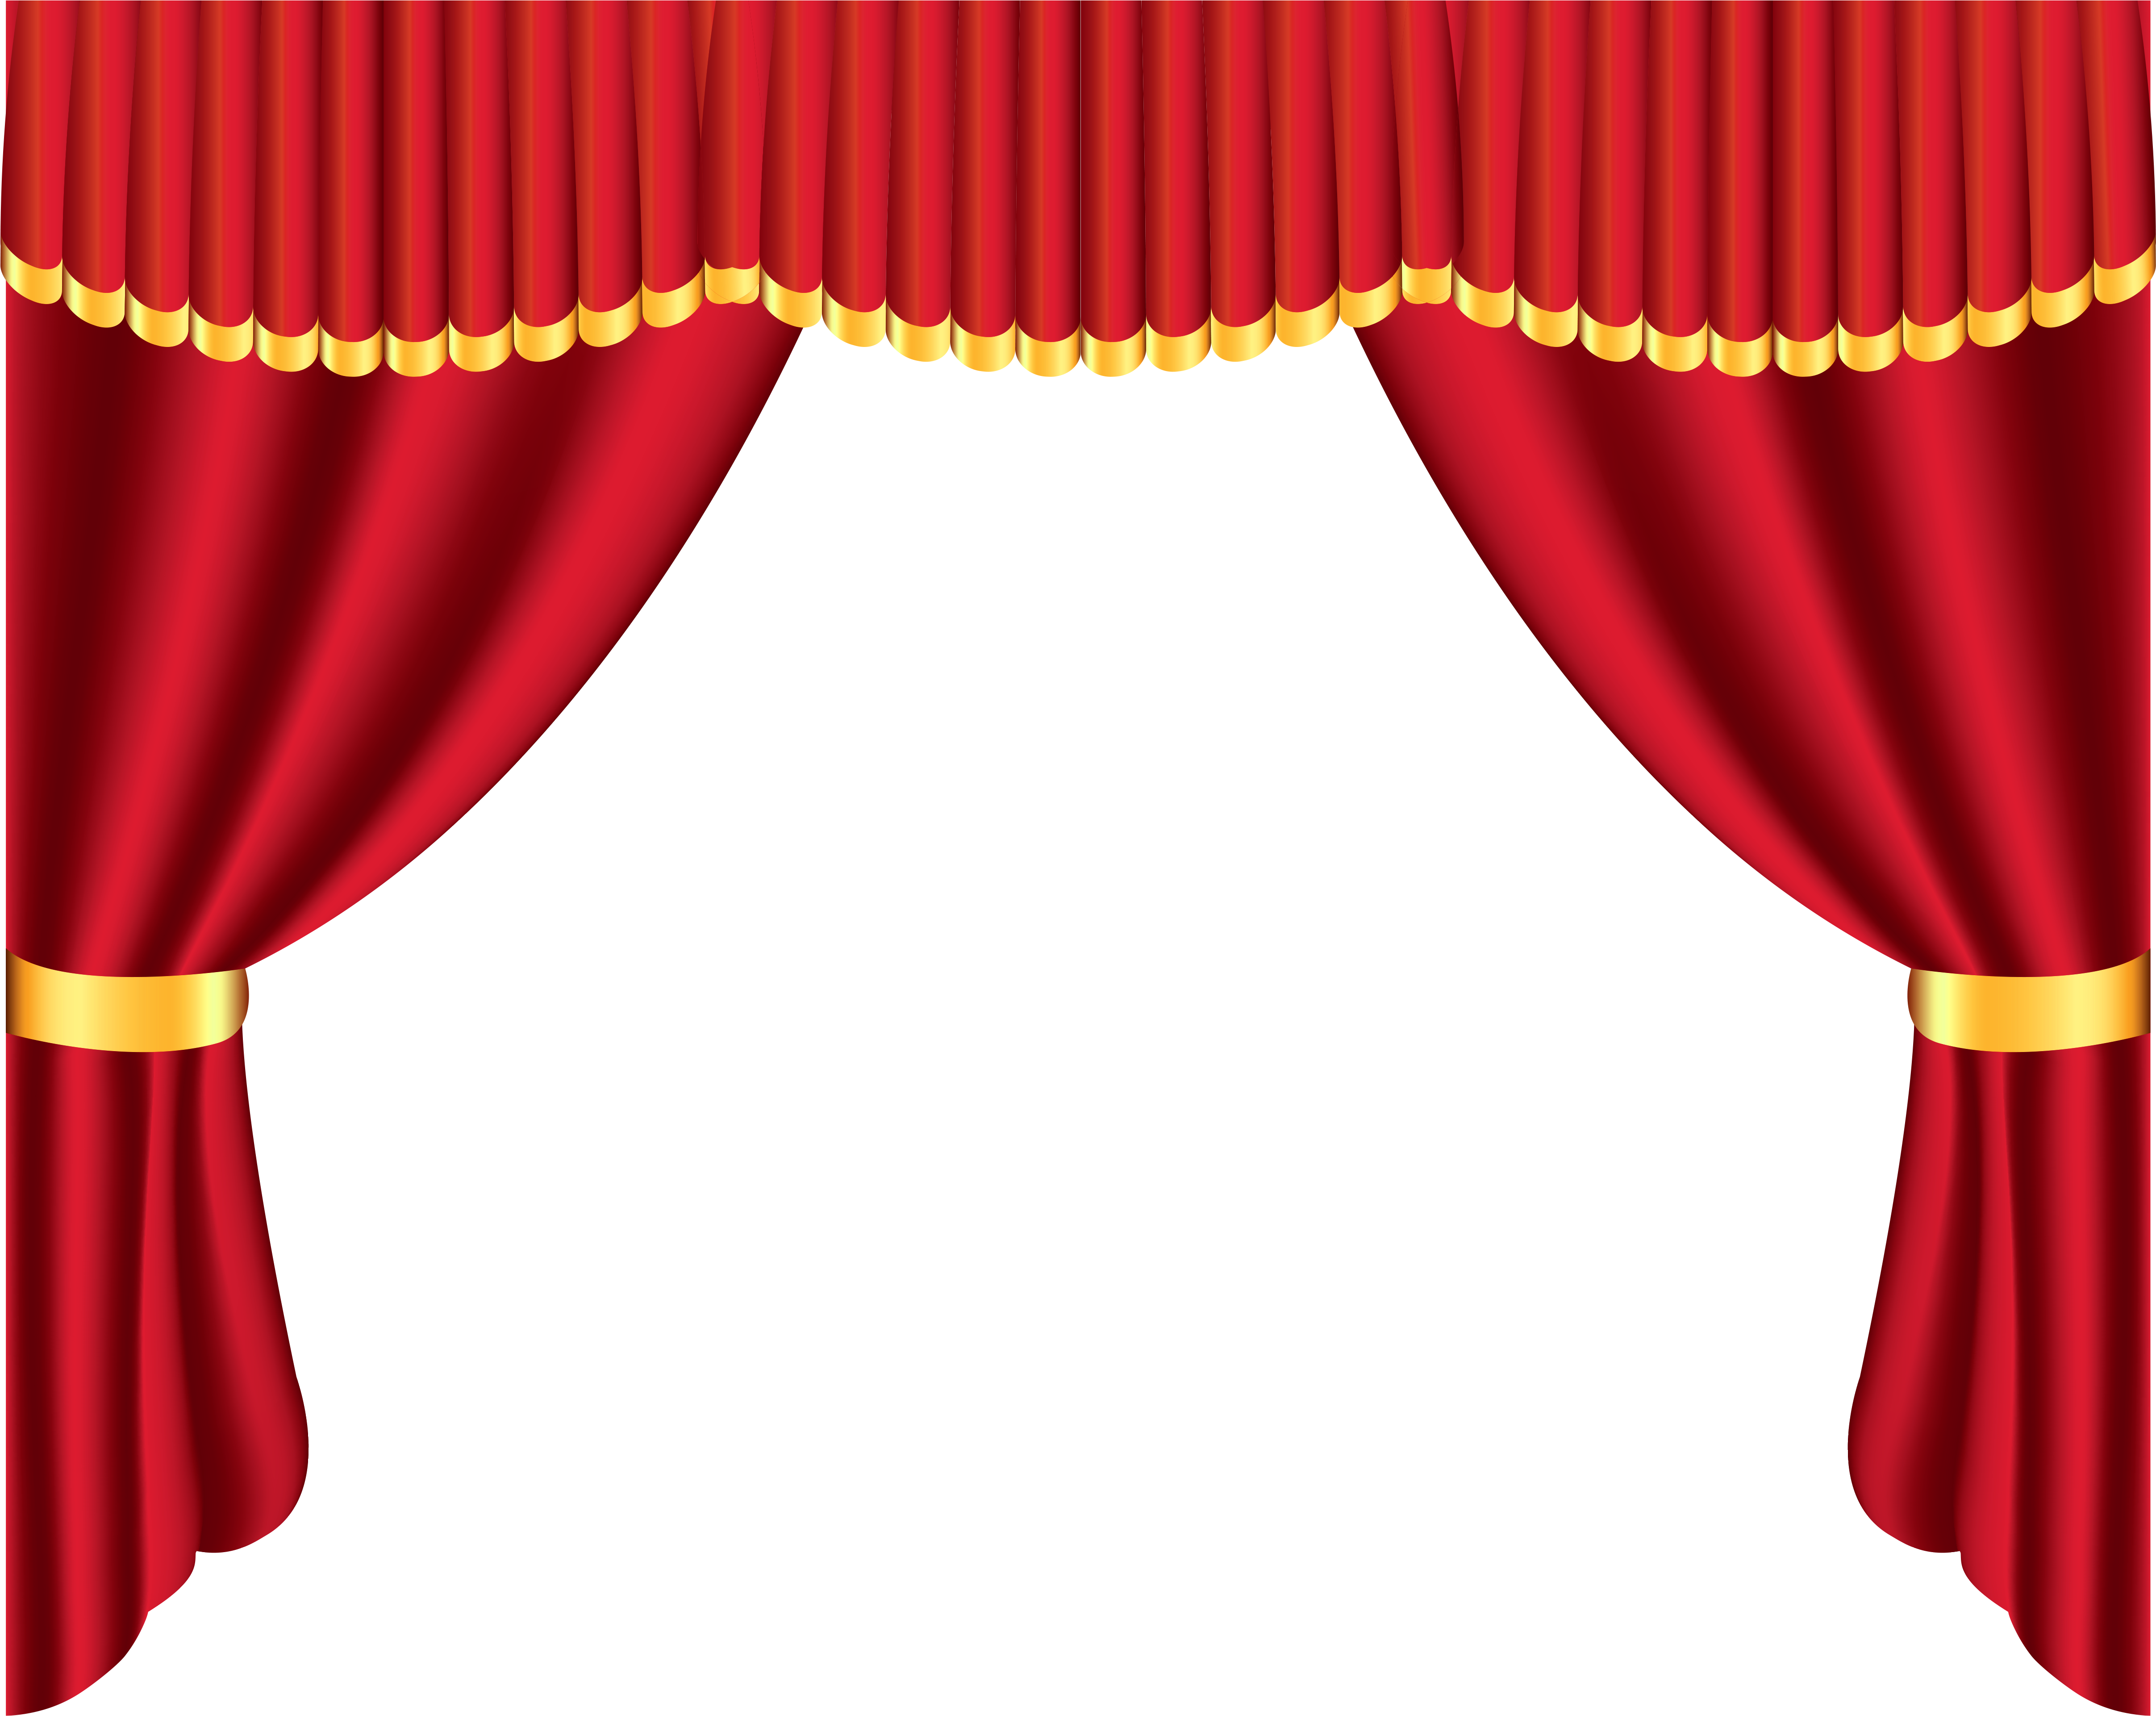 Download Cute Curtains Red Curtains Bedroom Curtains Puppet Stage With Curtains Clipart Png Image With No Background Pngkey Com